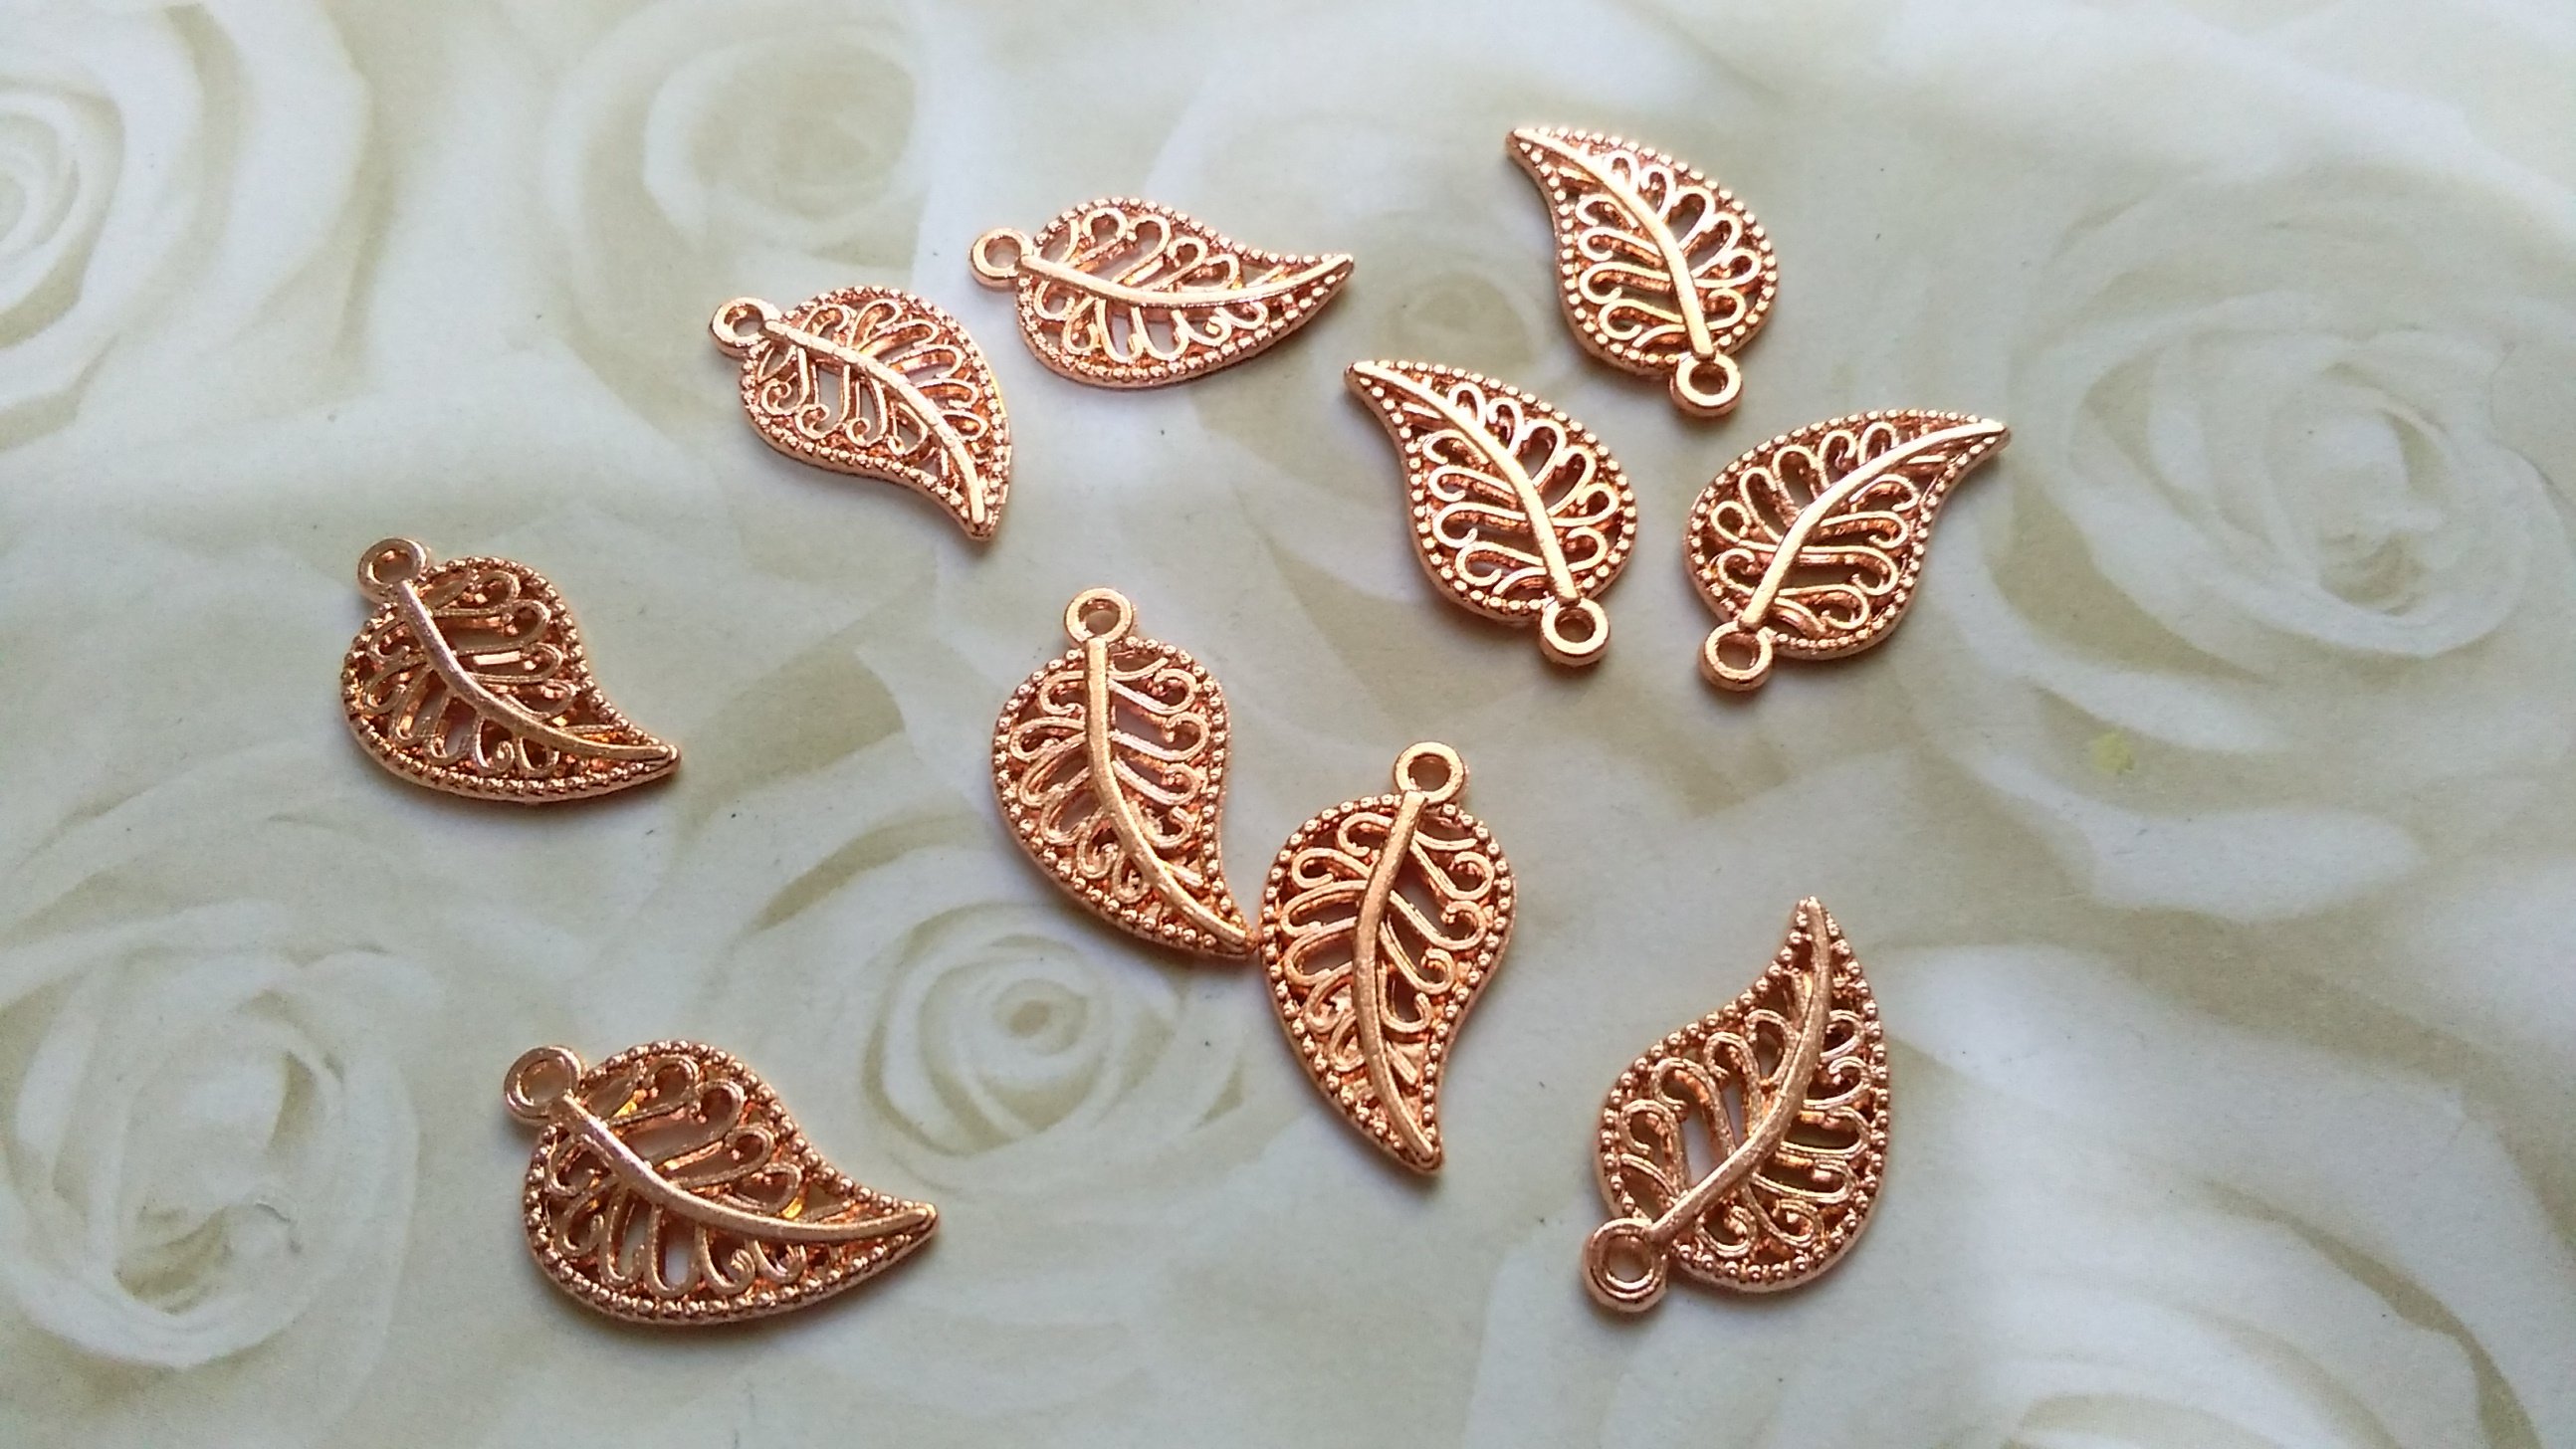 Rose Gold Toned Ornate Leaf 18x10mm Charms